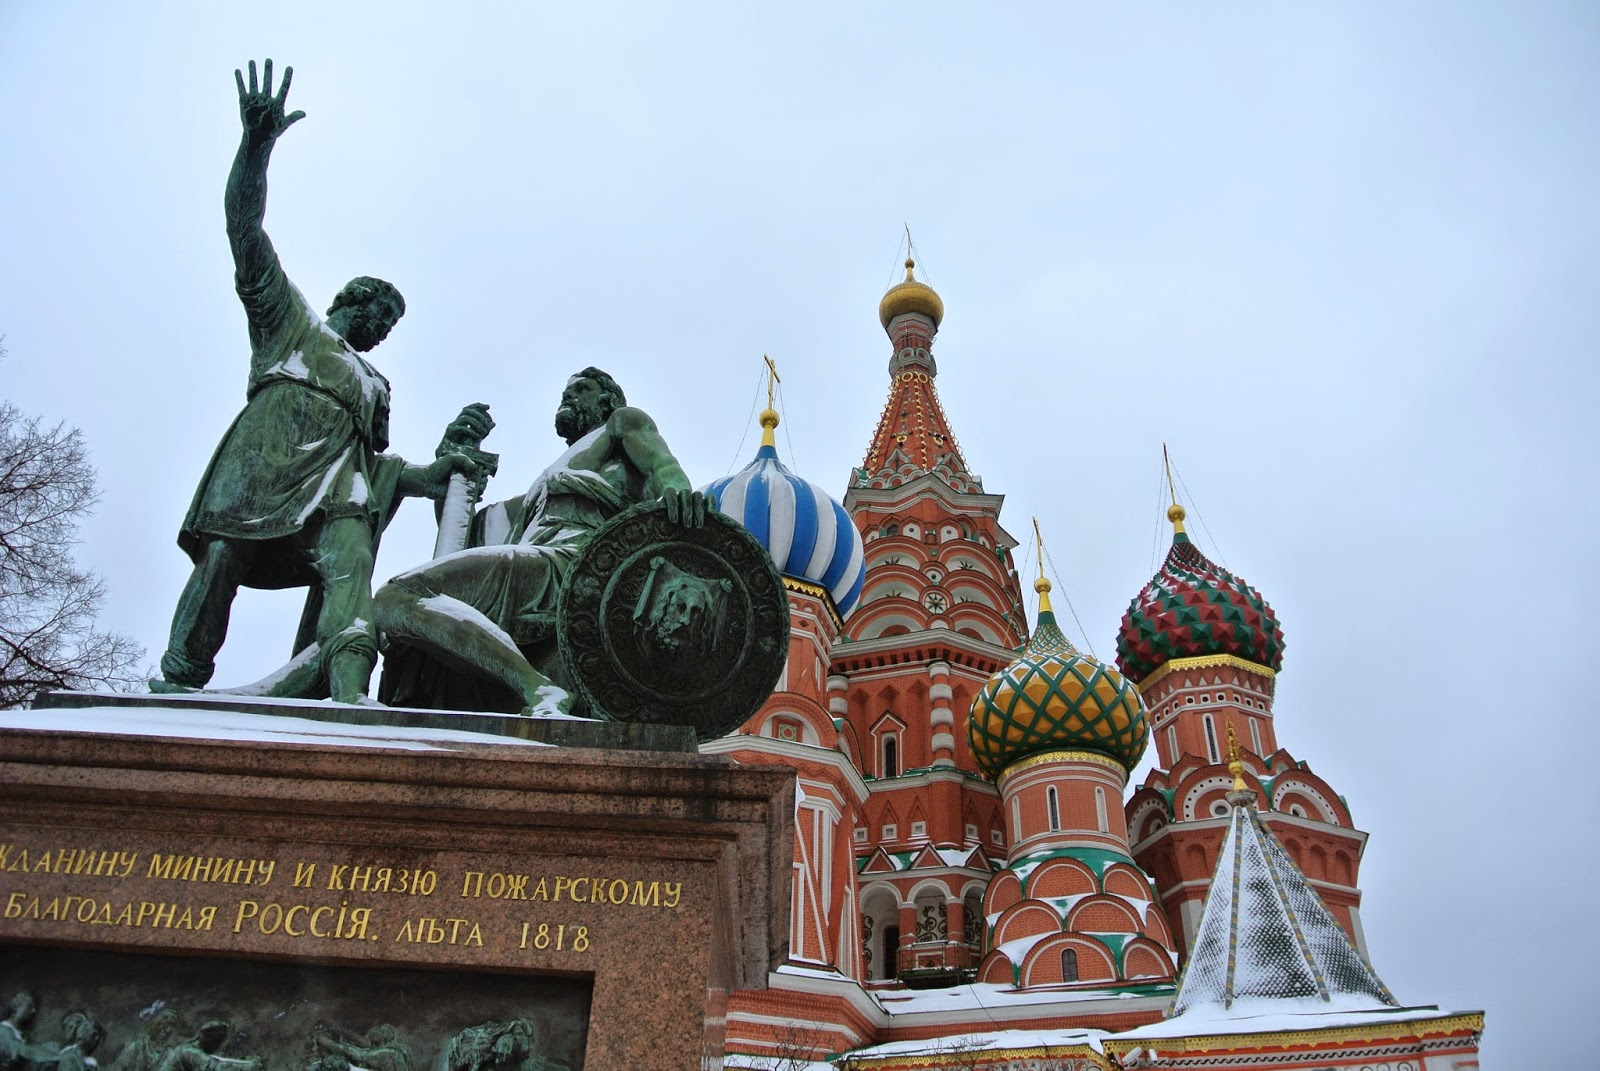 St Basil's, The Cathedral of Vasily the Blessed, Moscow, Red Square